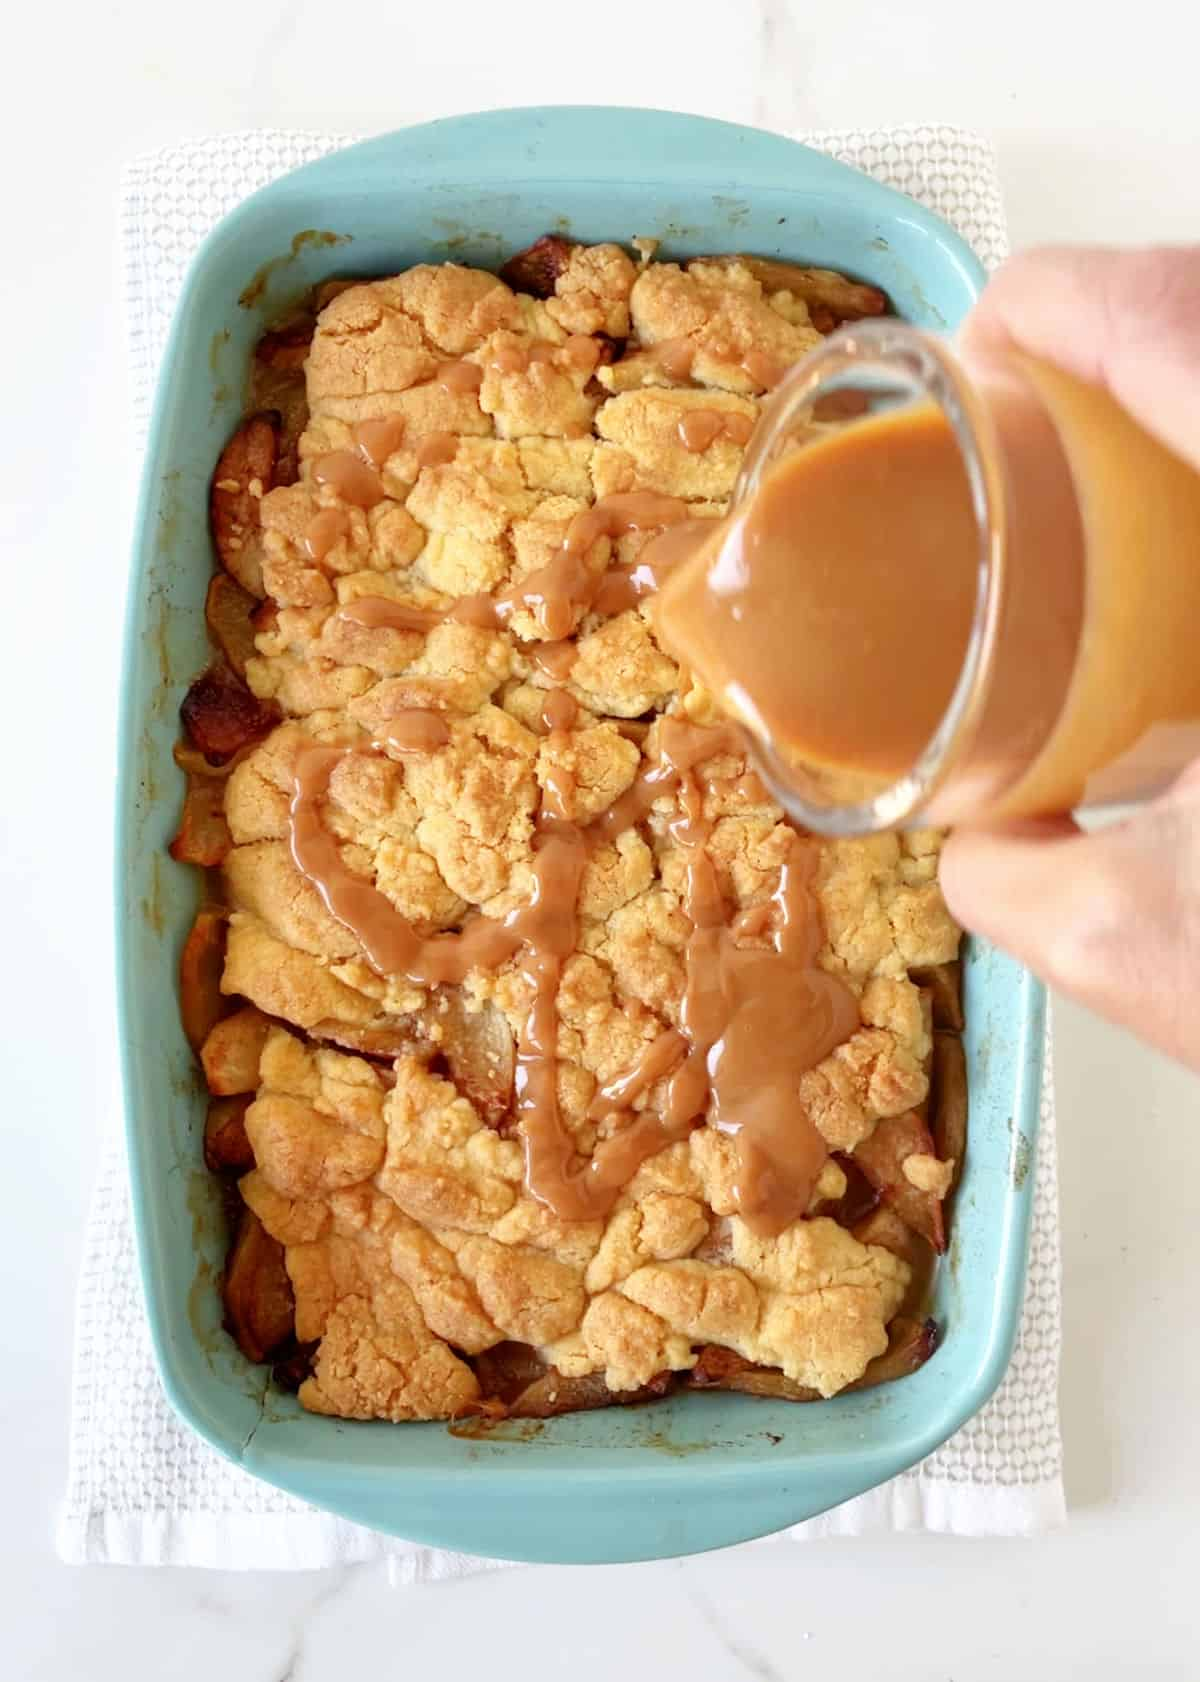 Drizzling caramel over baked dump cake in blue dish on towel over white marble surface